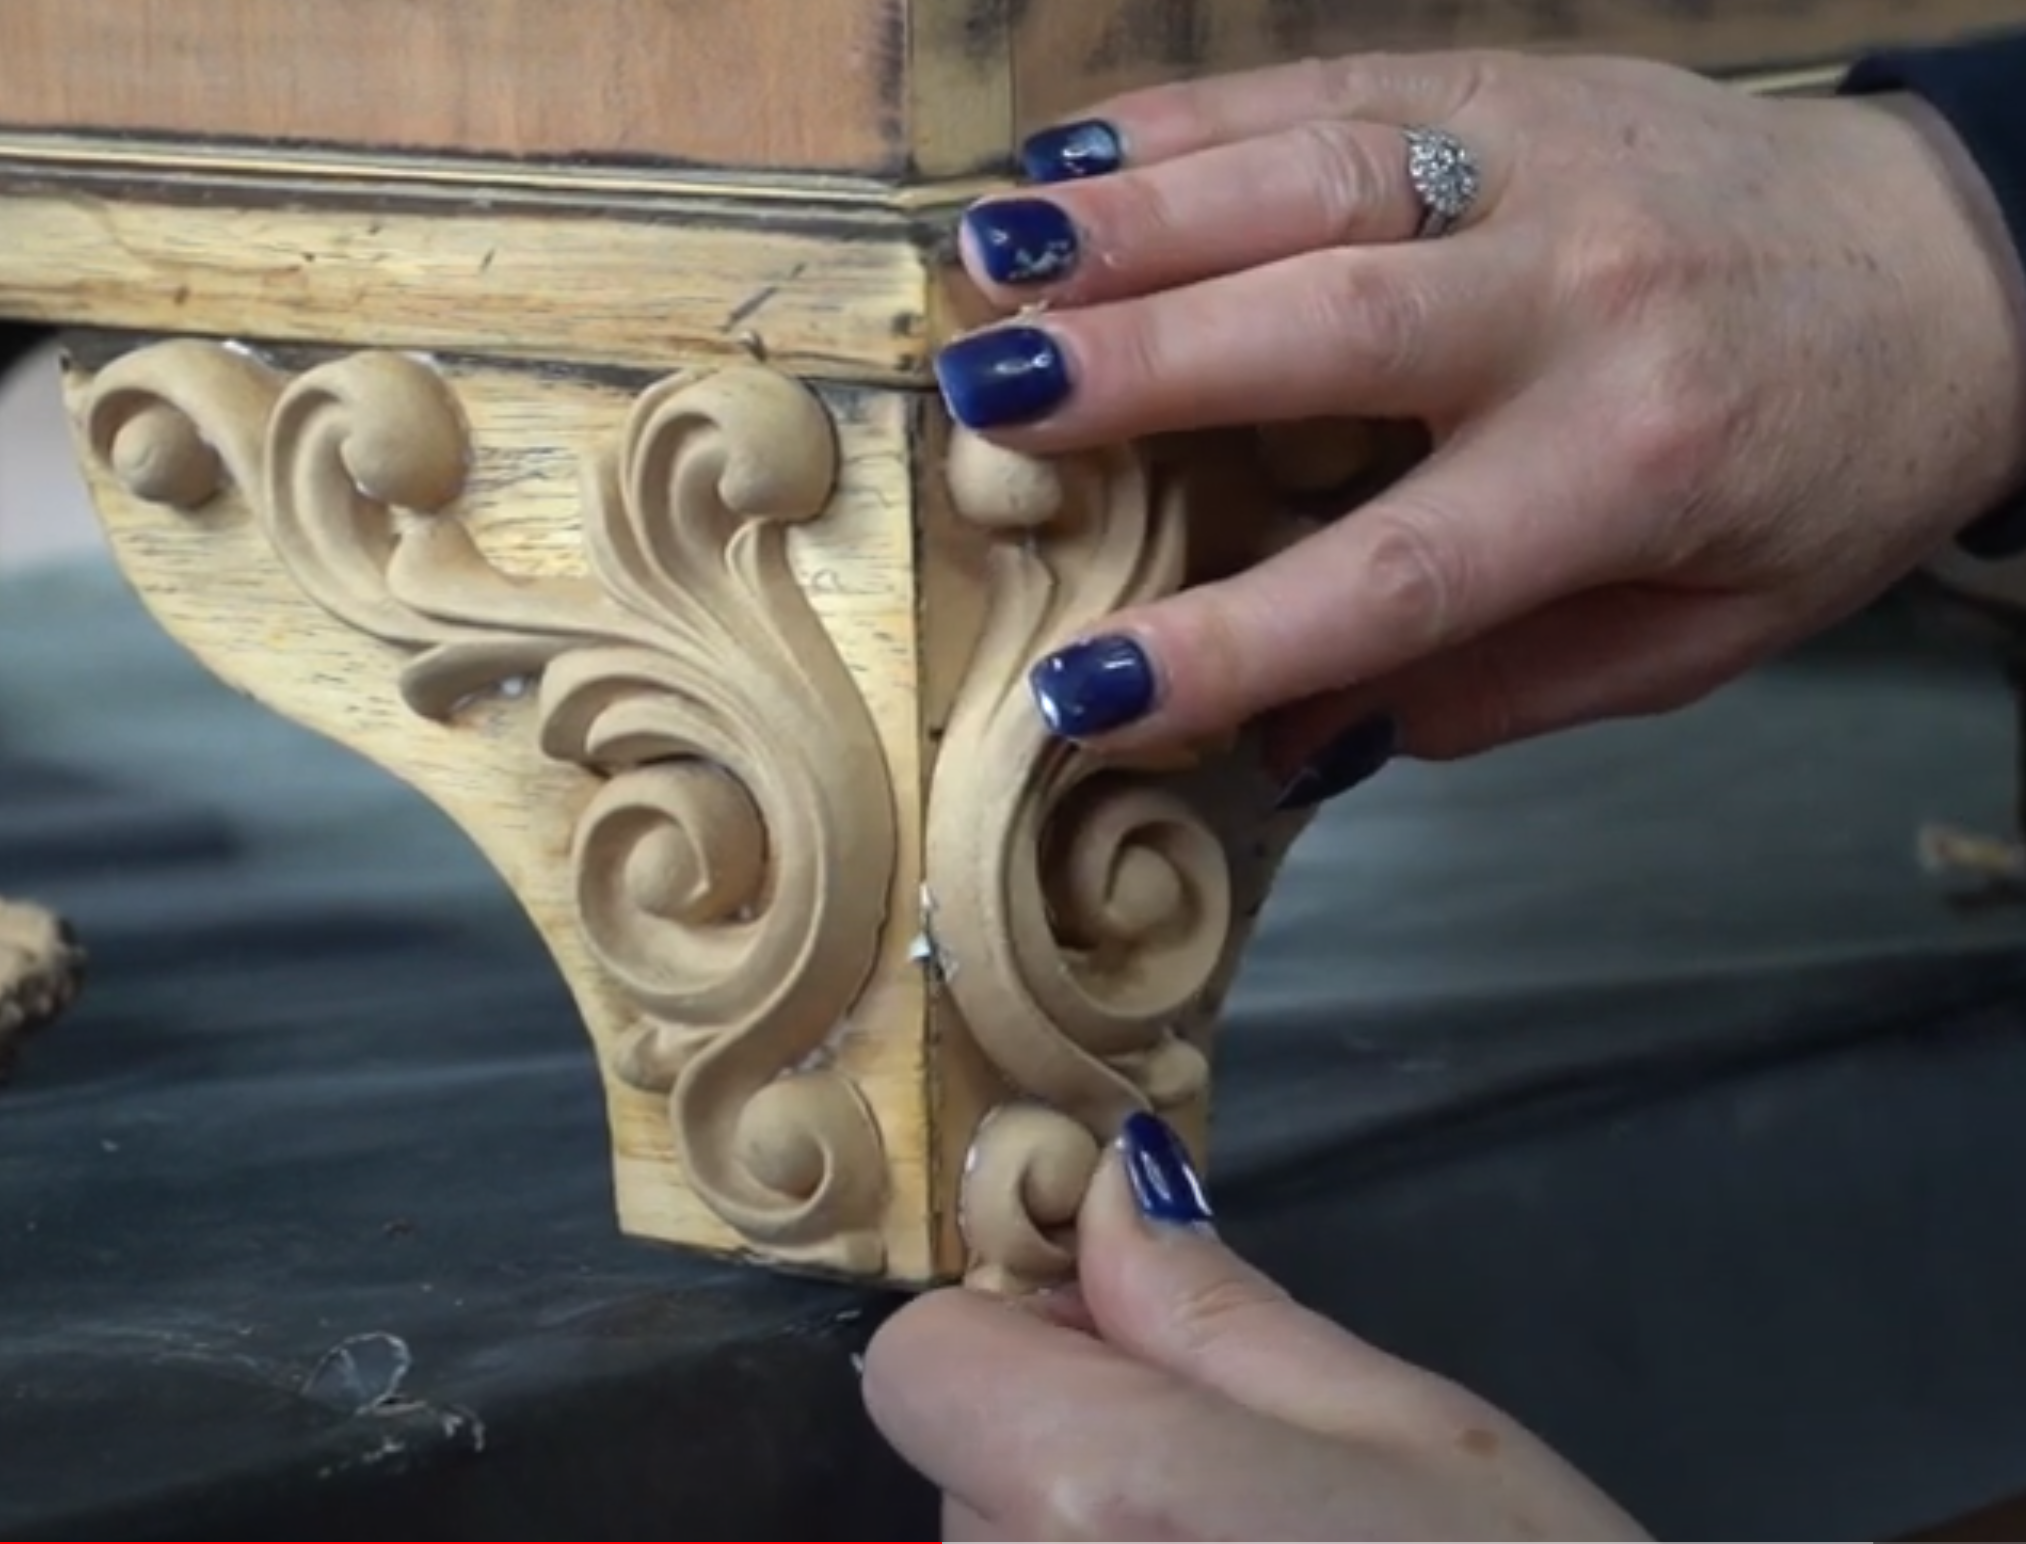 1239 WoodUbend mouldings being held in place on the feet of an upcycled desk by a woman with blue nails. In the forground you can see one moulding which has already stuck